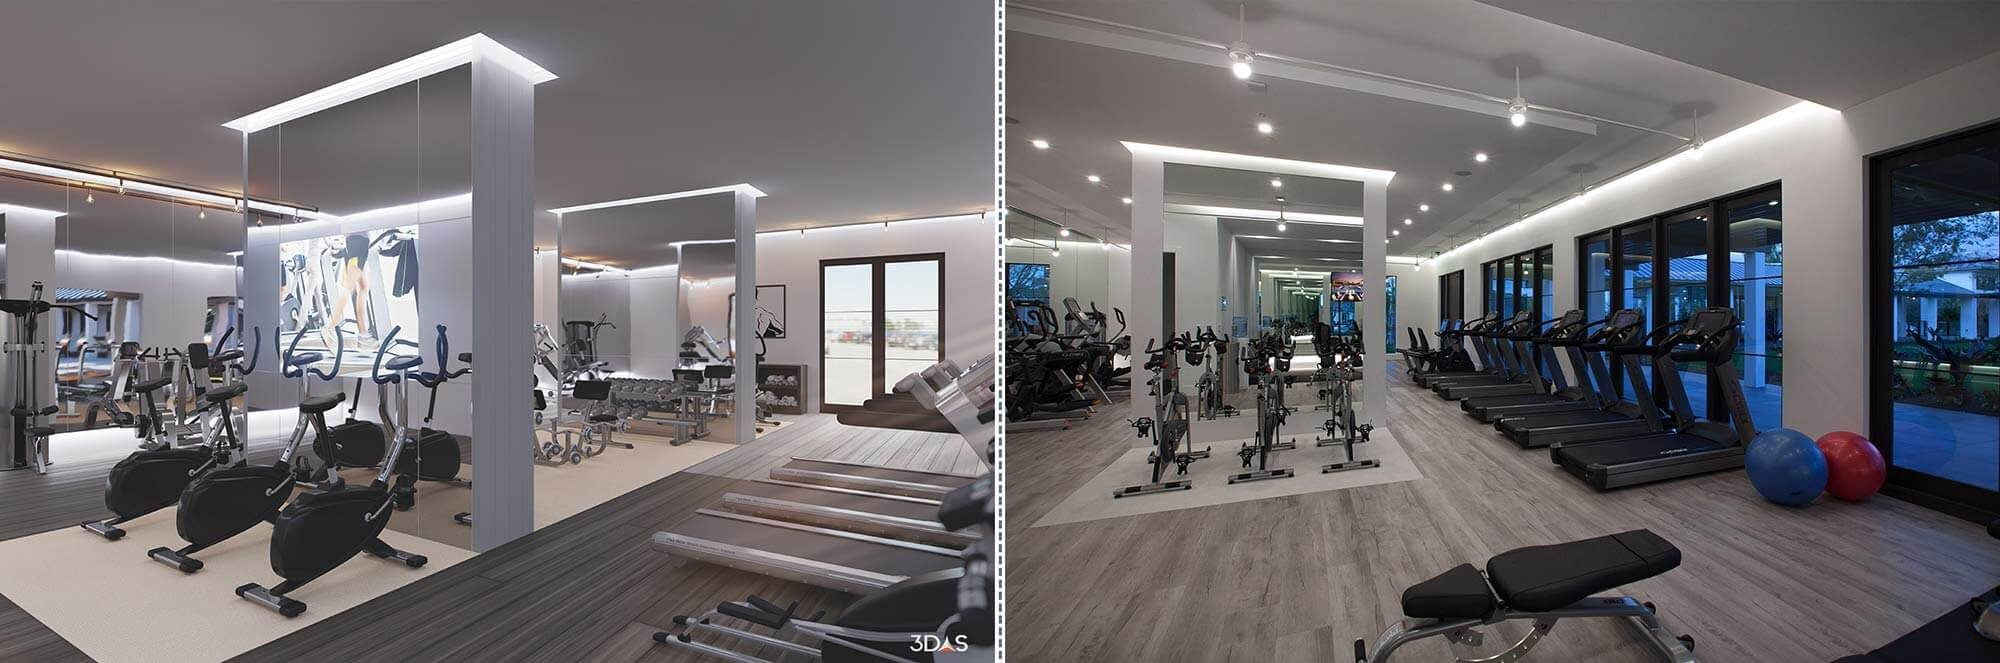 Fitness 3d renderings gallery and benefits over photography